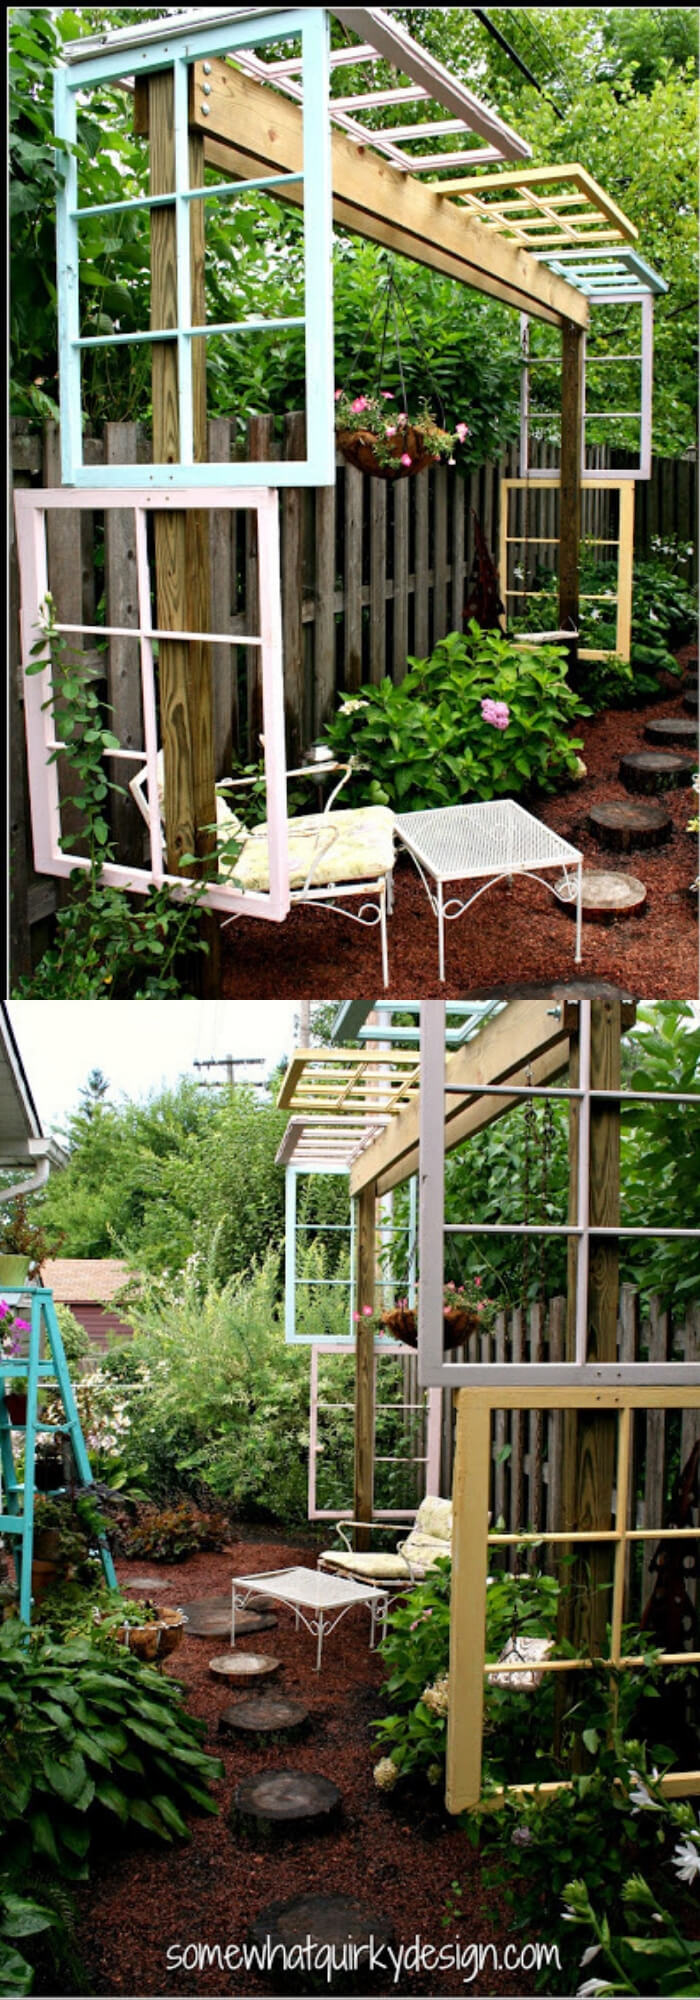 A Modified Pergola With Recycled Windows | Creative DIY Outdoor Window Decor Ideas